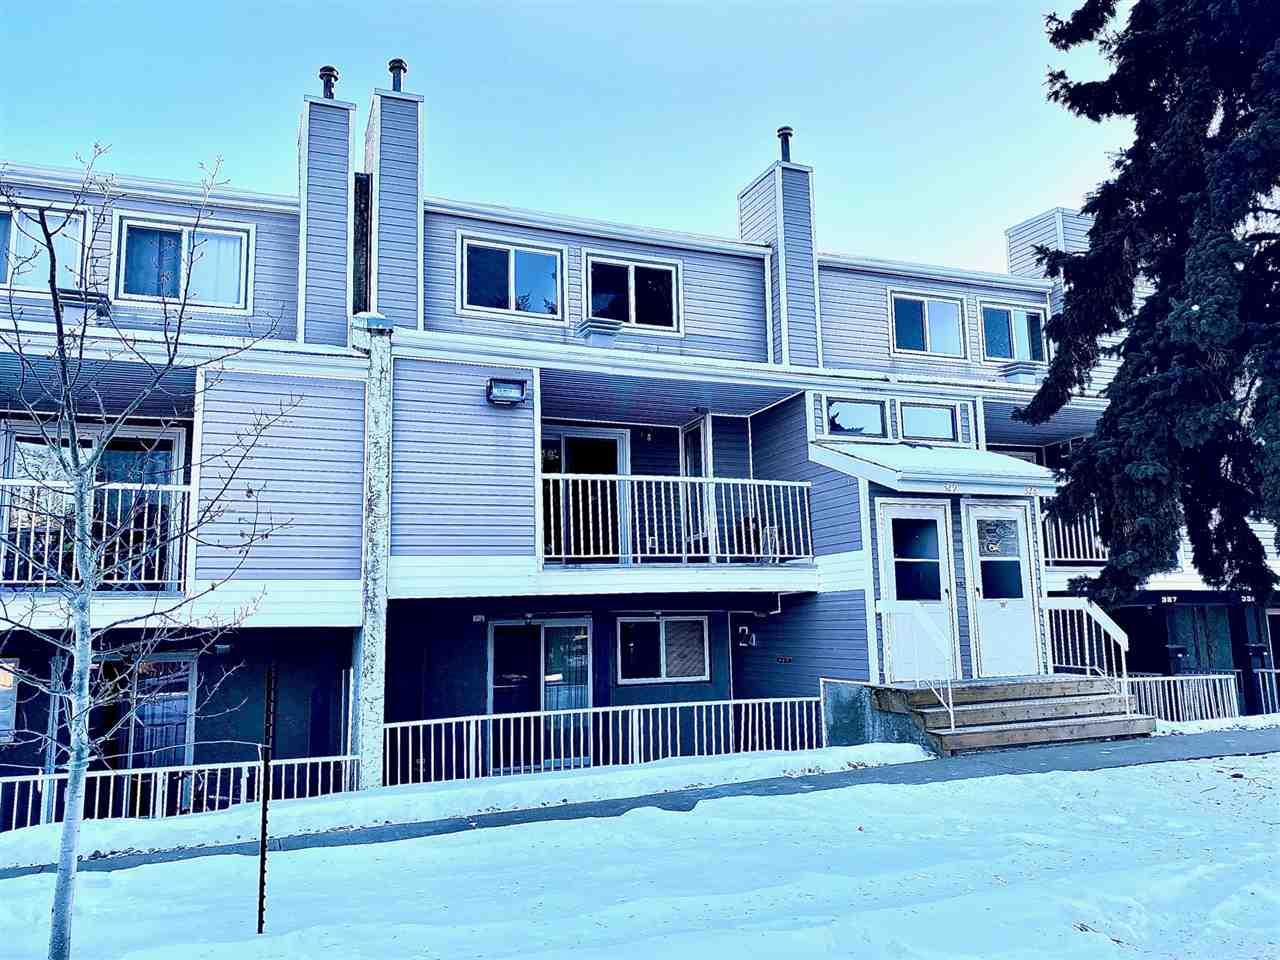 SAVE 50K! Priced to sell and wont last long - this 2 bedroom FULLY RENOVATED unit with over 1000 sqft in the desirable southwest area near South Edmonton Common is near Century Park LRT and has direct access to U of A! The living room has a corner stone fireplace and features big patio doors opening up to a large balcony. There is lots of space in the kitchen and dining room, tons of storage space as well to tuck away all the extras. There is also in-suite laundry which is another huge added bonus. This unit has been completely renovated and includes stainless steel appliances! Move in and ENJOY!